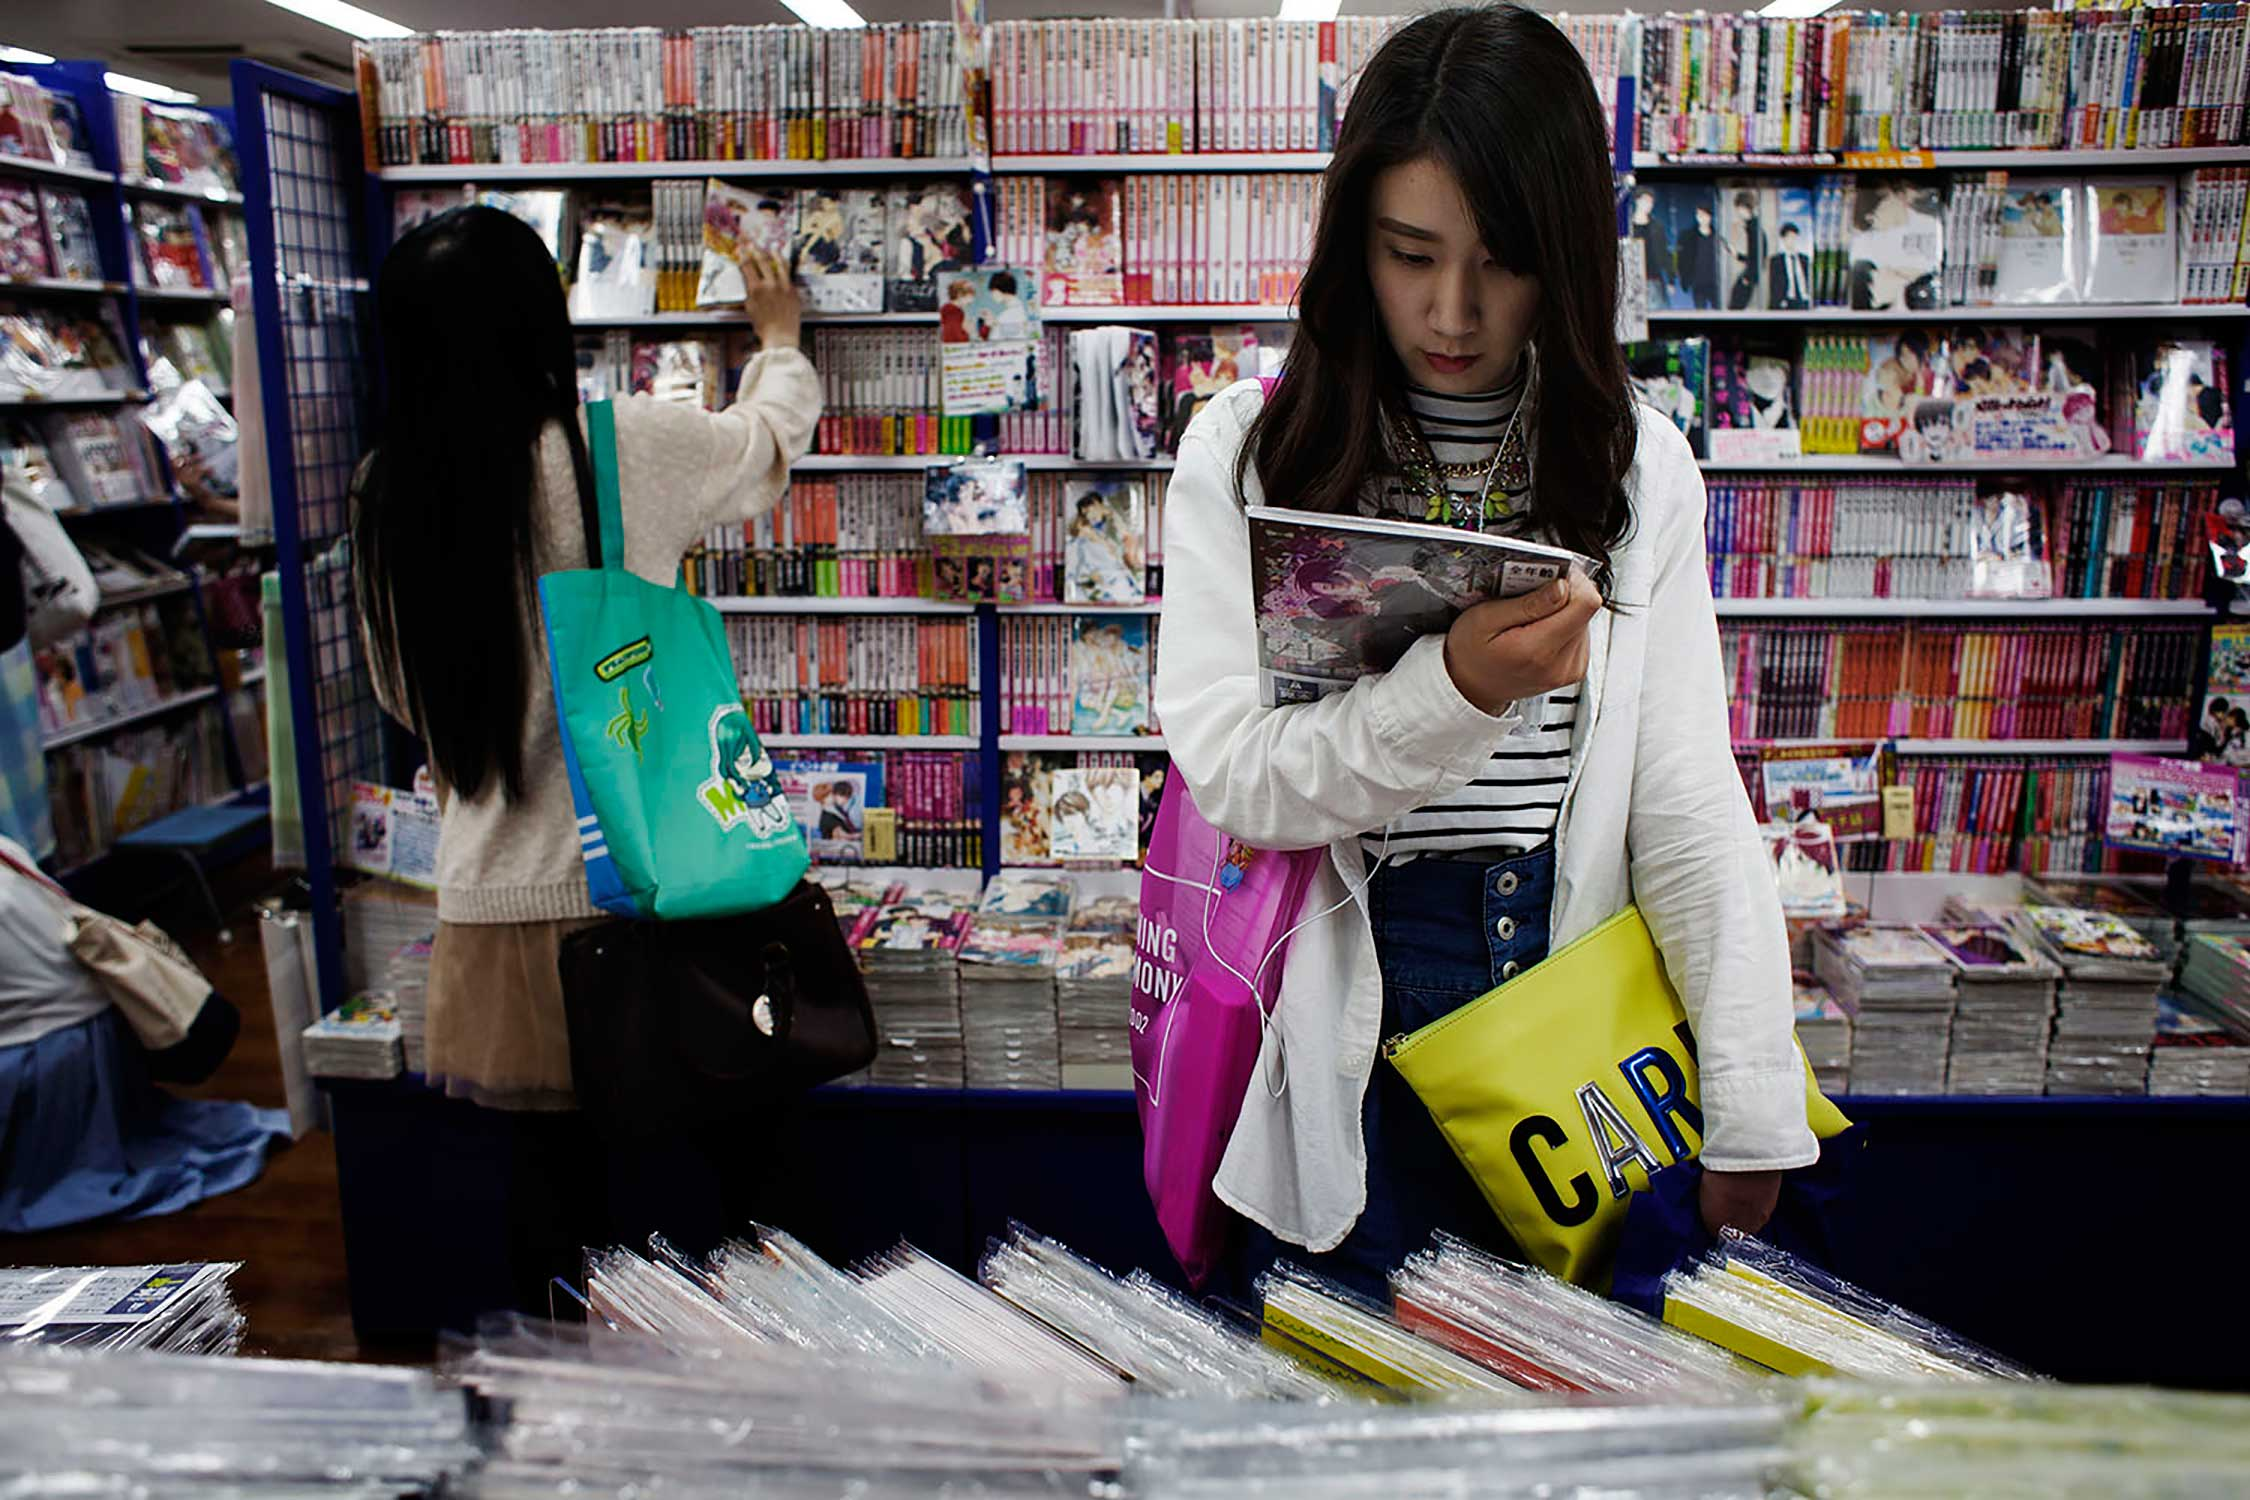 A girl shops for Boys Love Manga books in an Anime shop in downtown Tokyo.